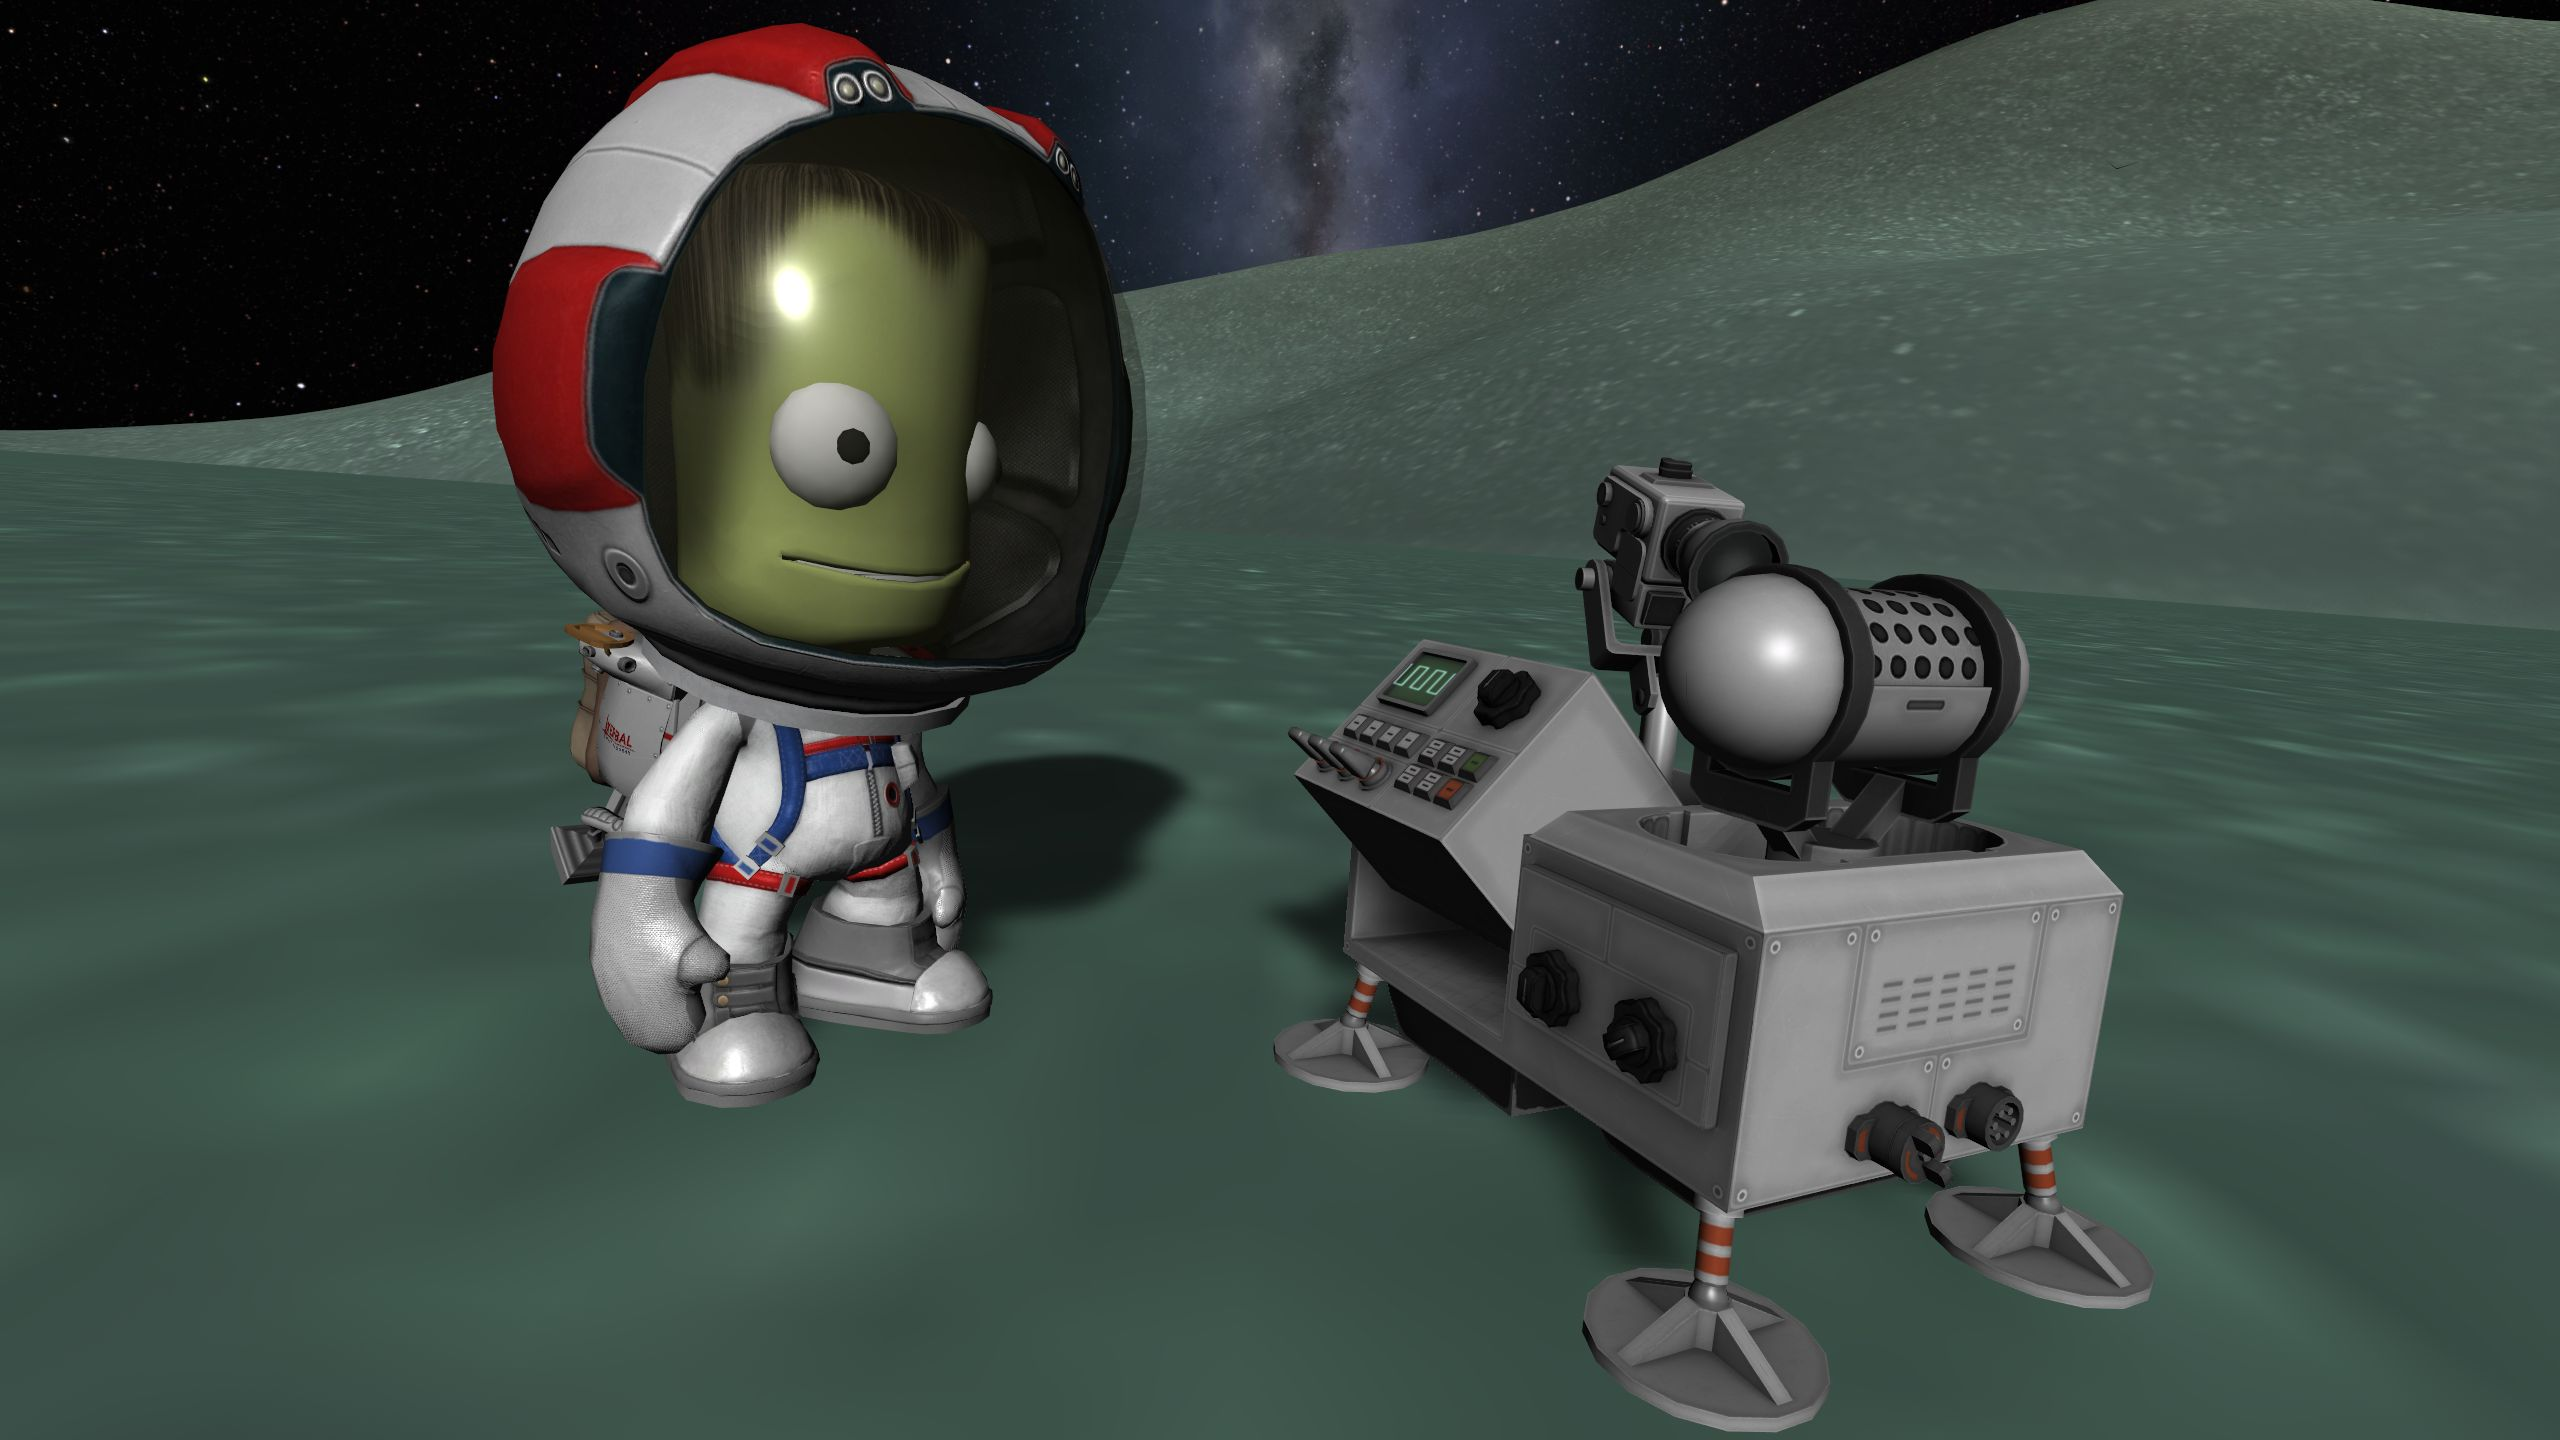 Watch Kerbal Space Program's new science gizmos in action in this